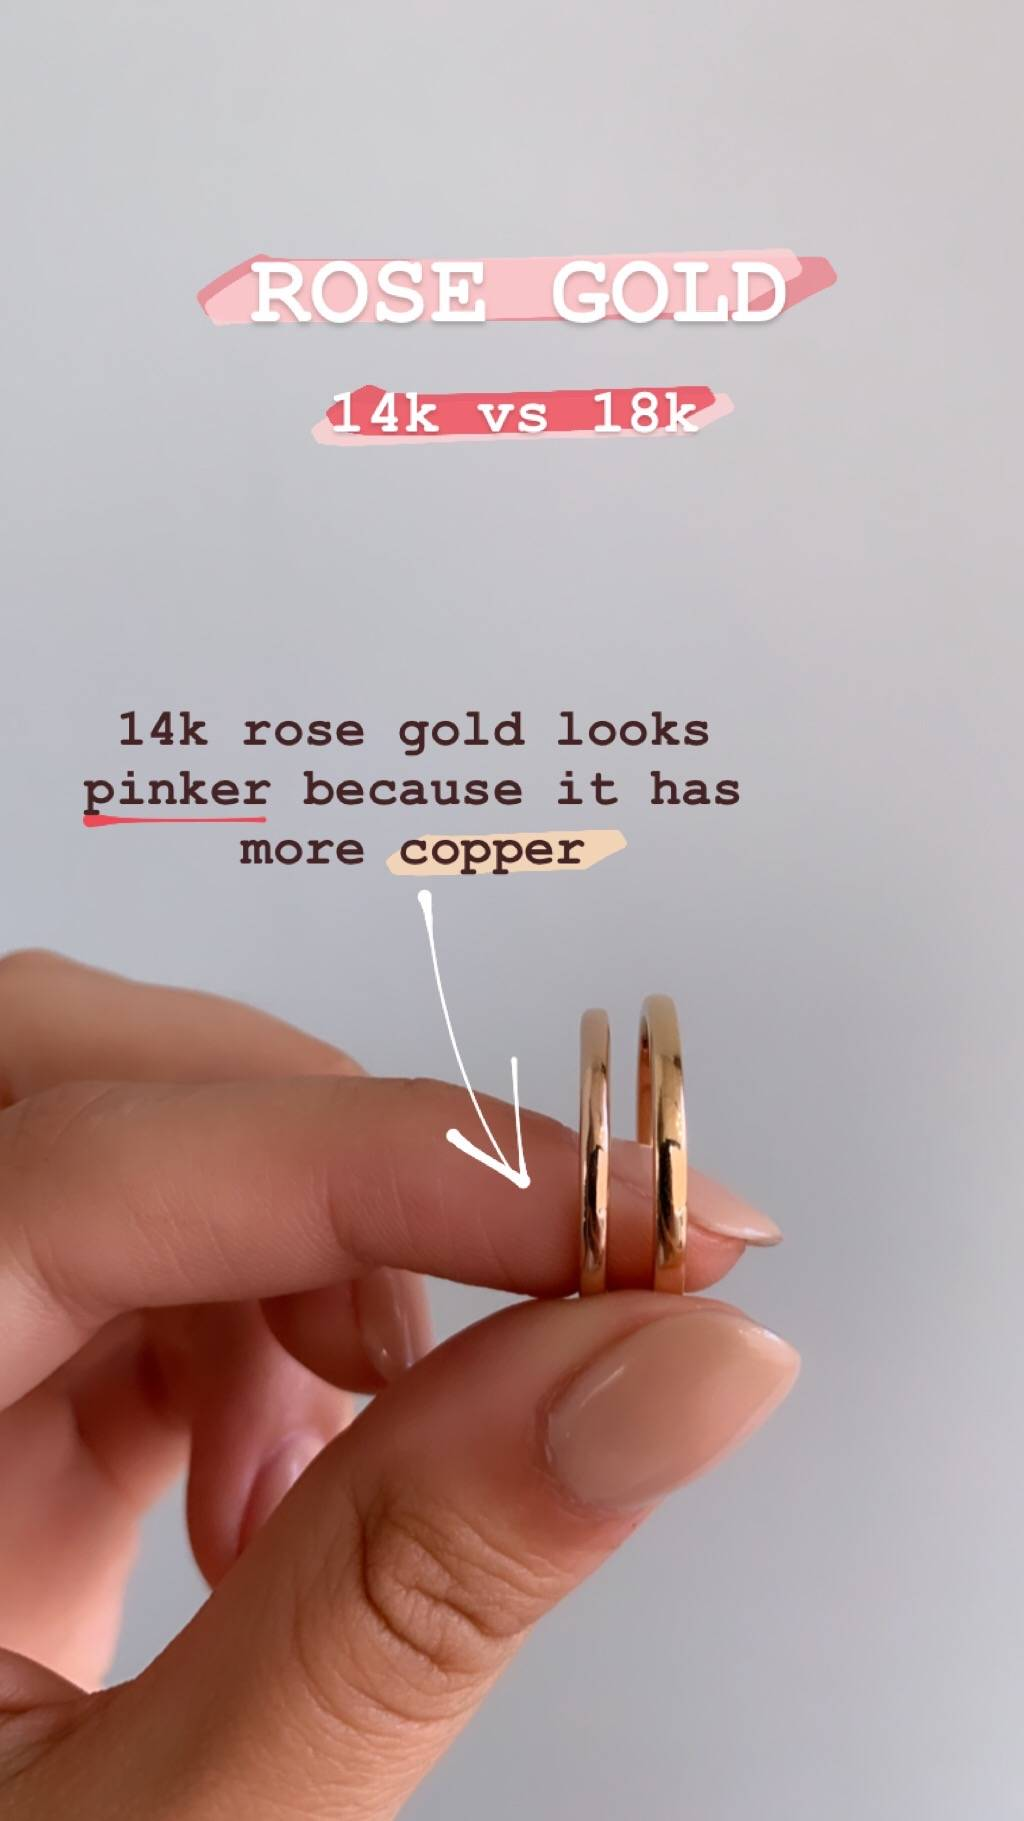 comparison 14k rose gold vs. 18k rose gold